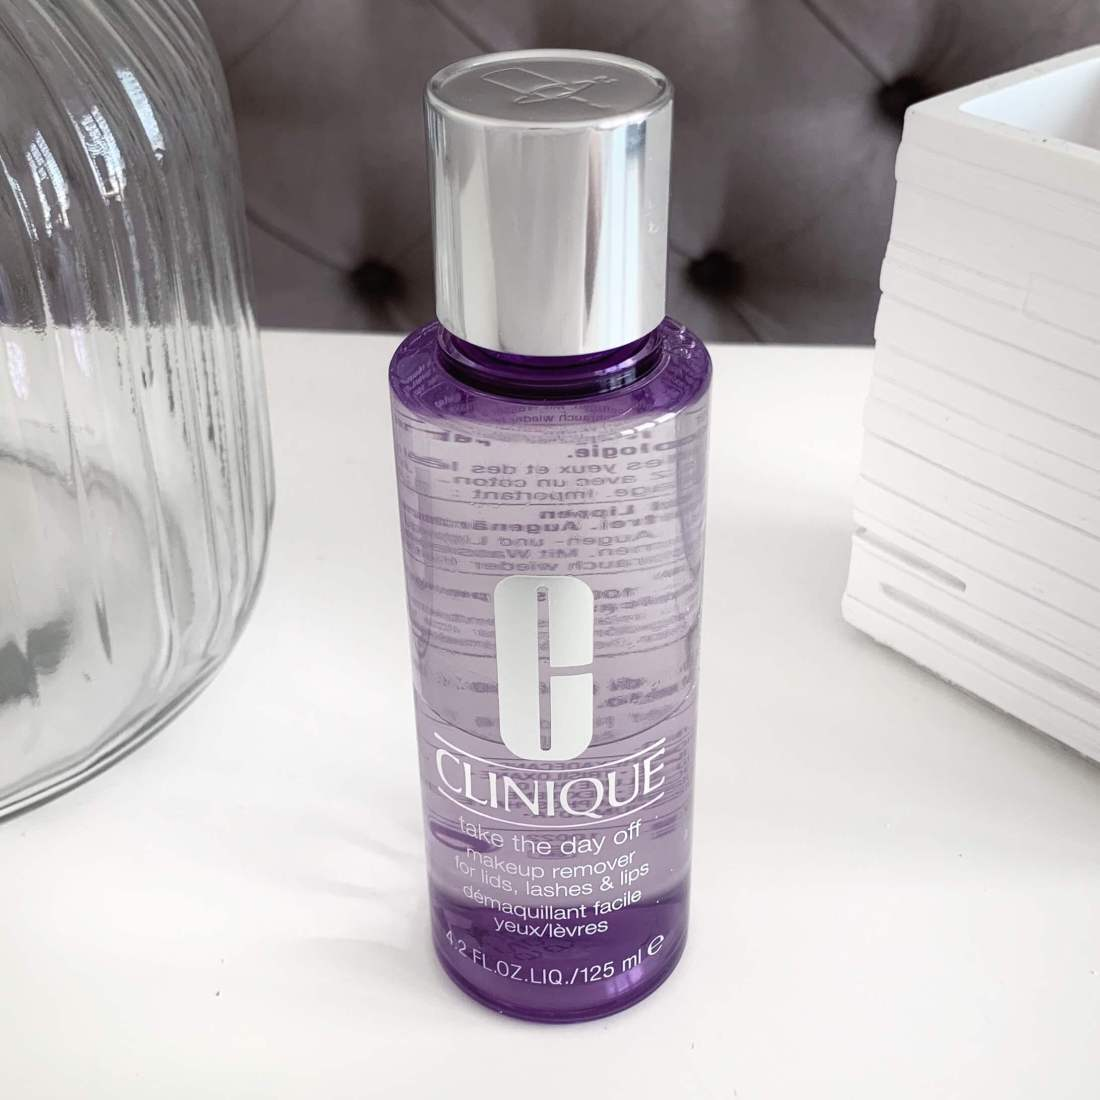 Clinique Take the day off Review